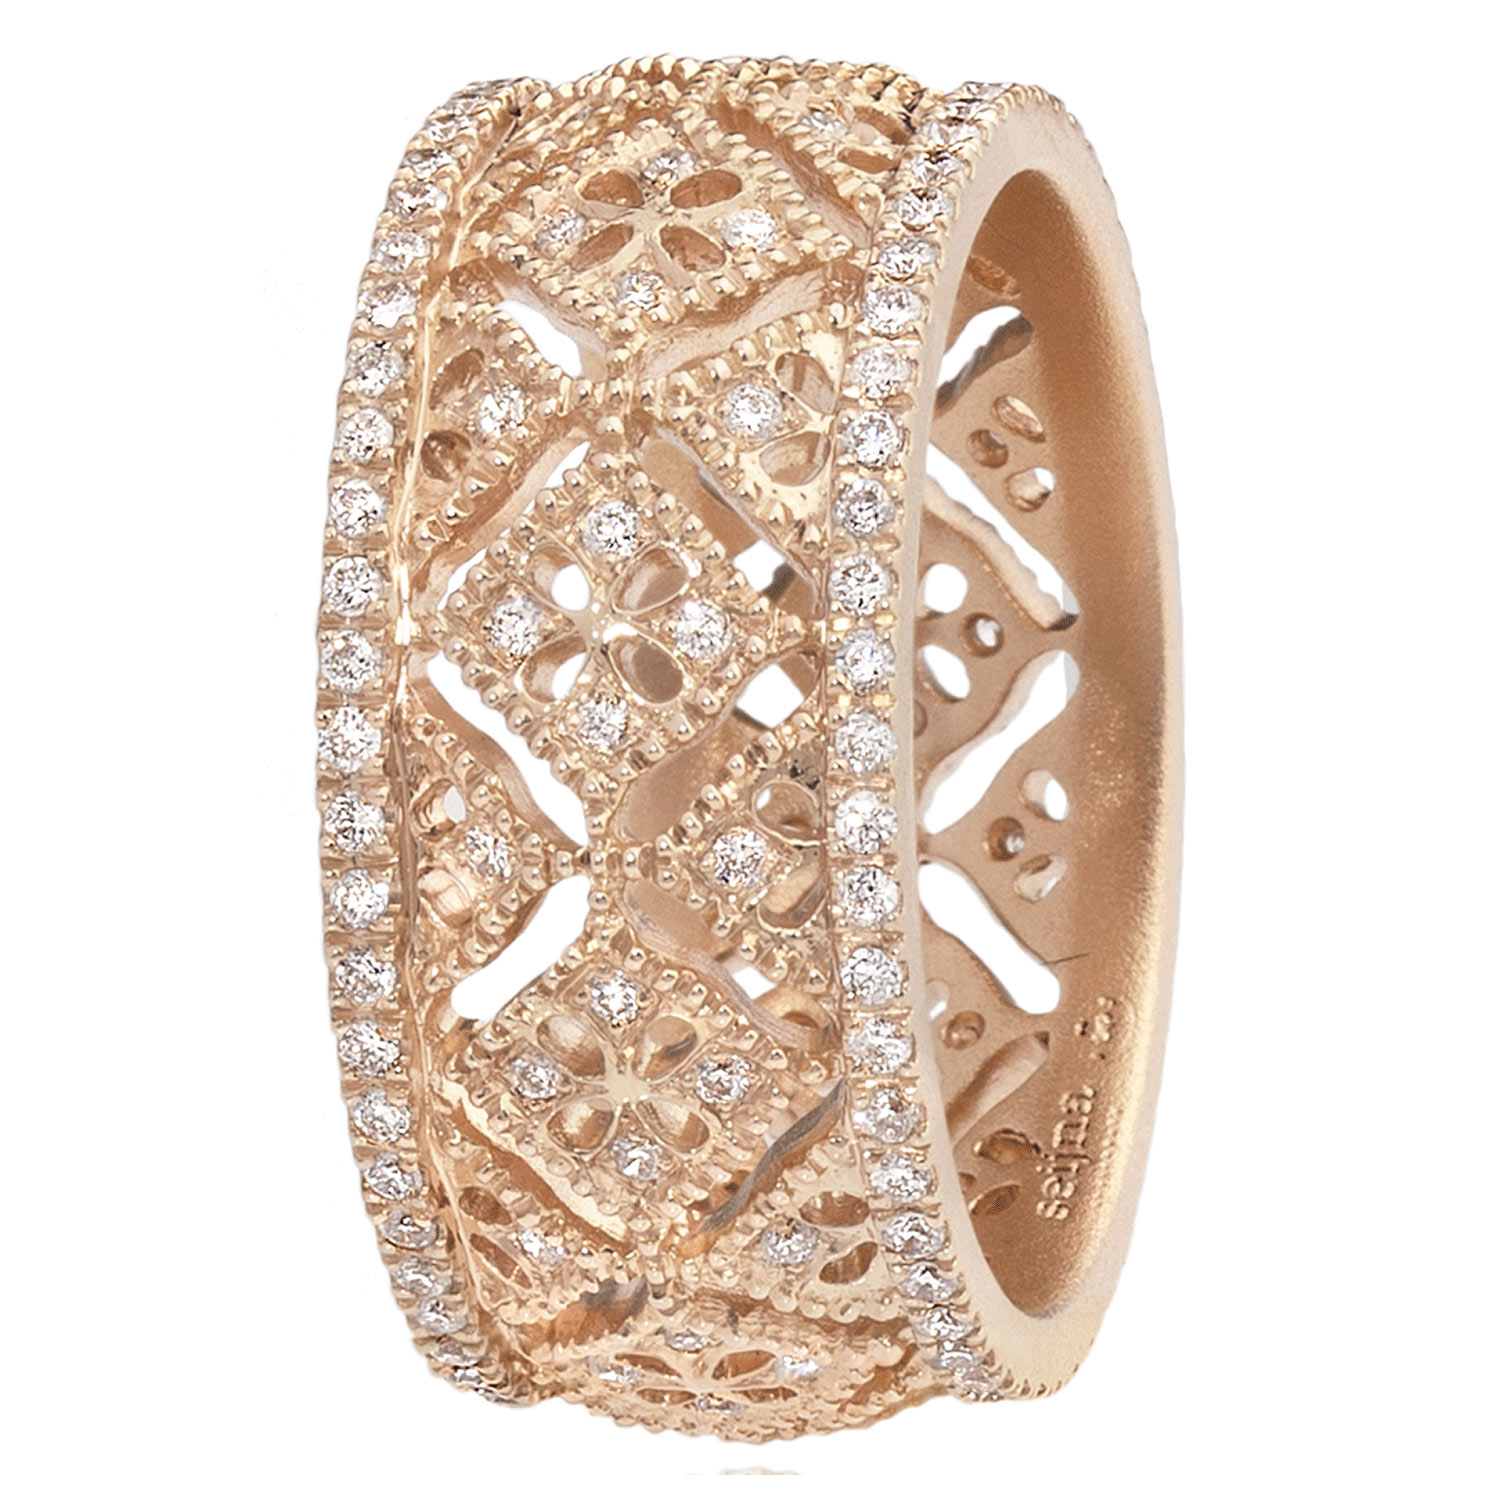 Bague Montefiore PM en or Rose et diamants